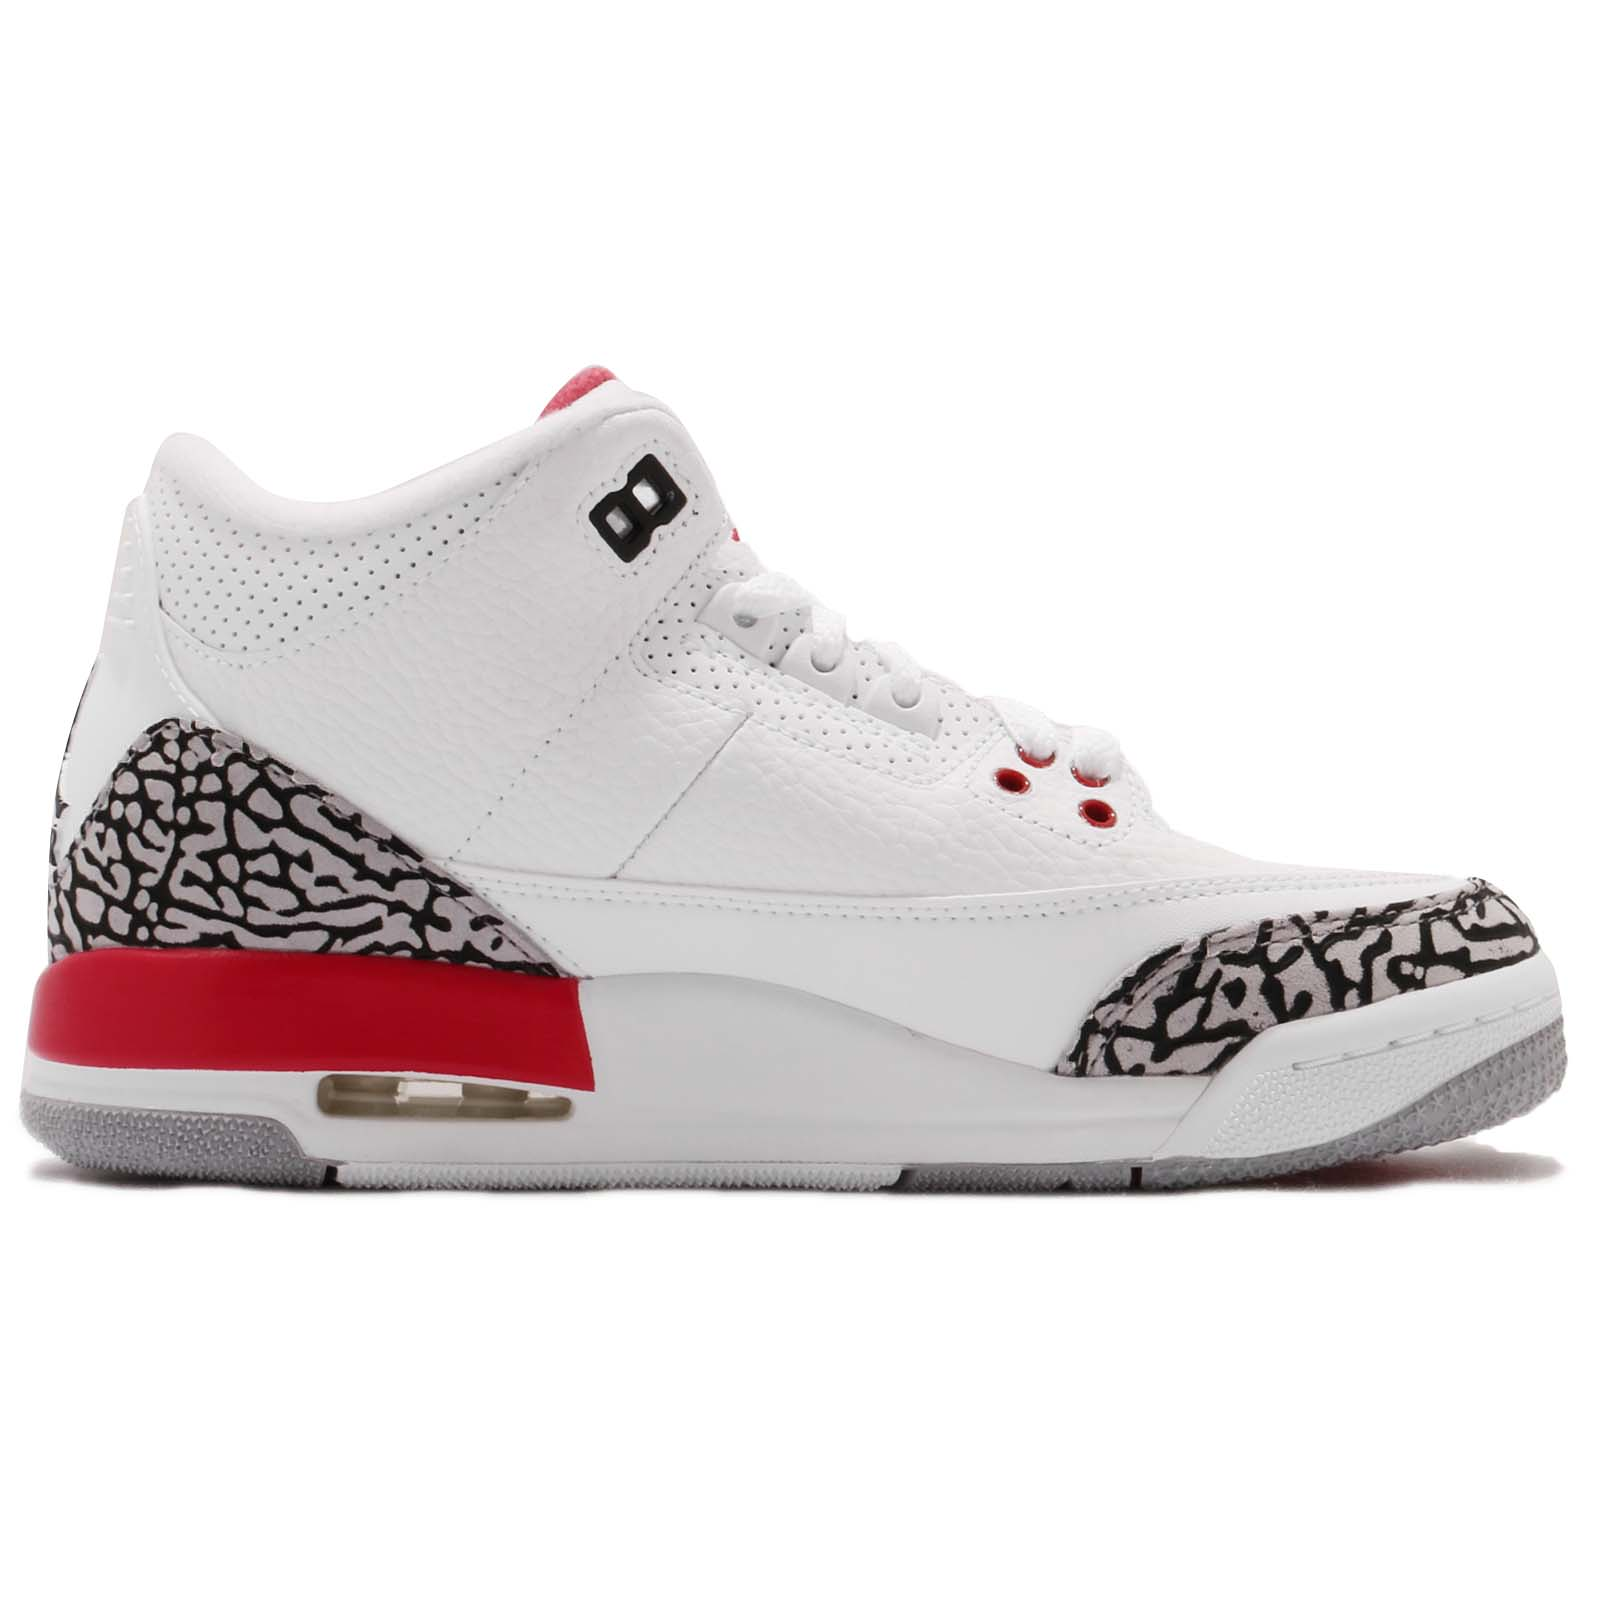 31aca2391534 Nike Air Jordan 3 Retro BG Right Foot US7Y Left Foot US6Y KID Women ...